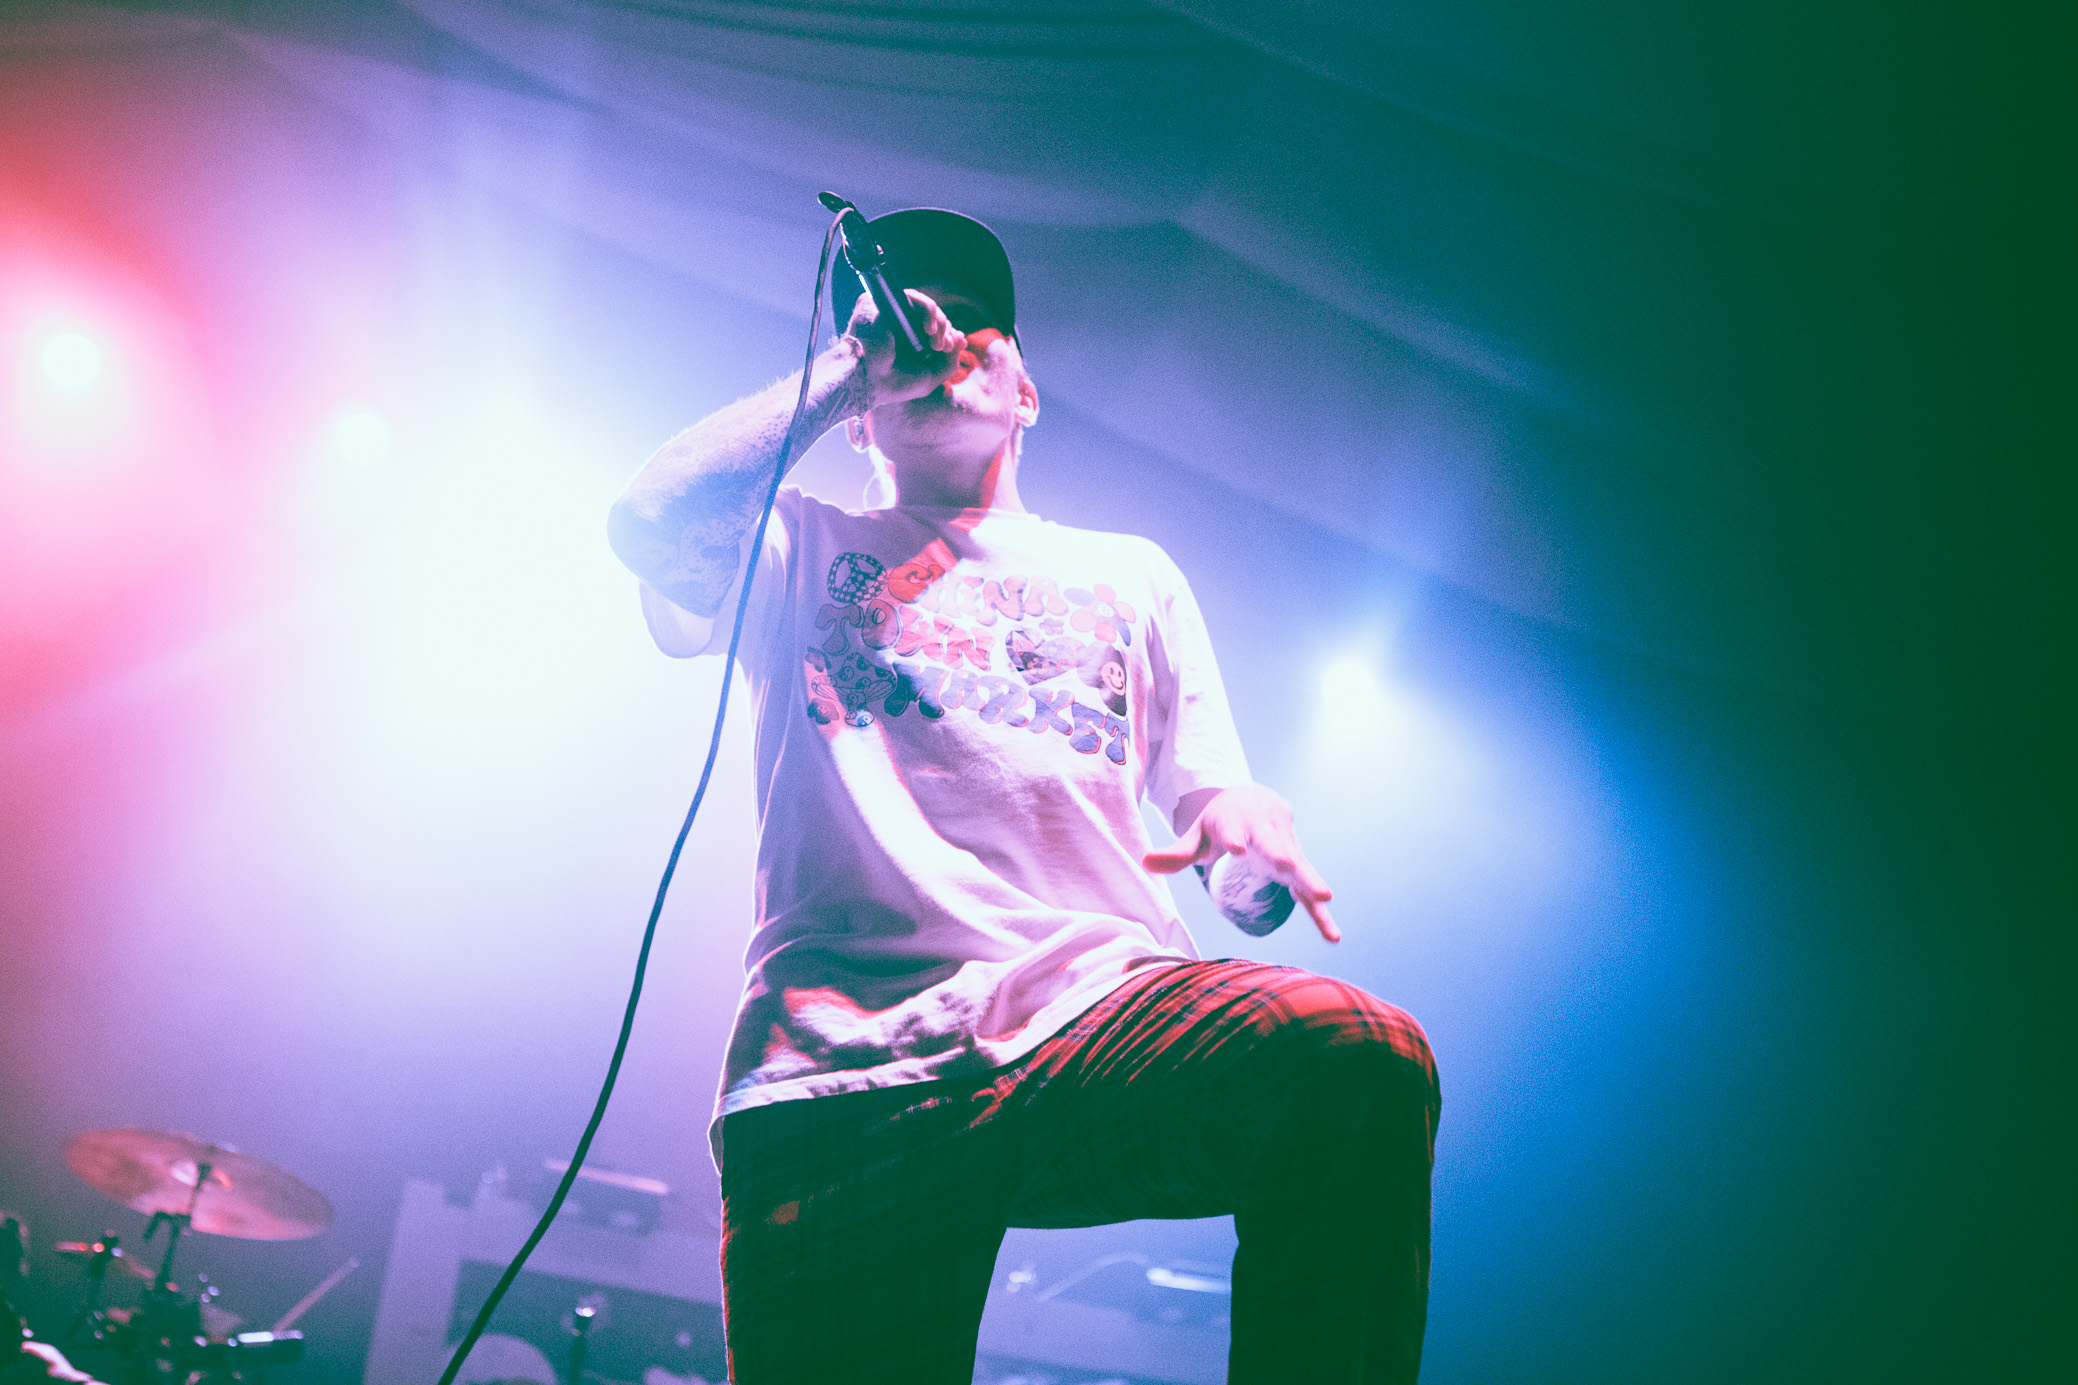 Ben Barlow of Neck Deep performs in concert at WorkPlay in Birmingham, Alabama on September 16th, 2018. (Photo by David A. Smith/DSmithScenes)